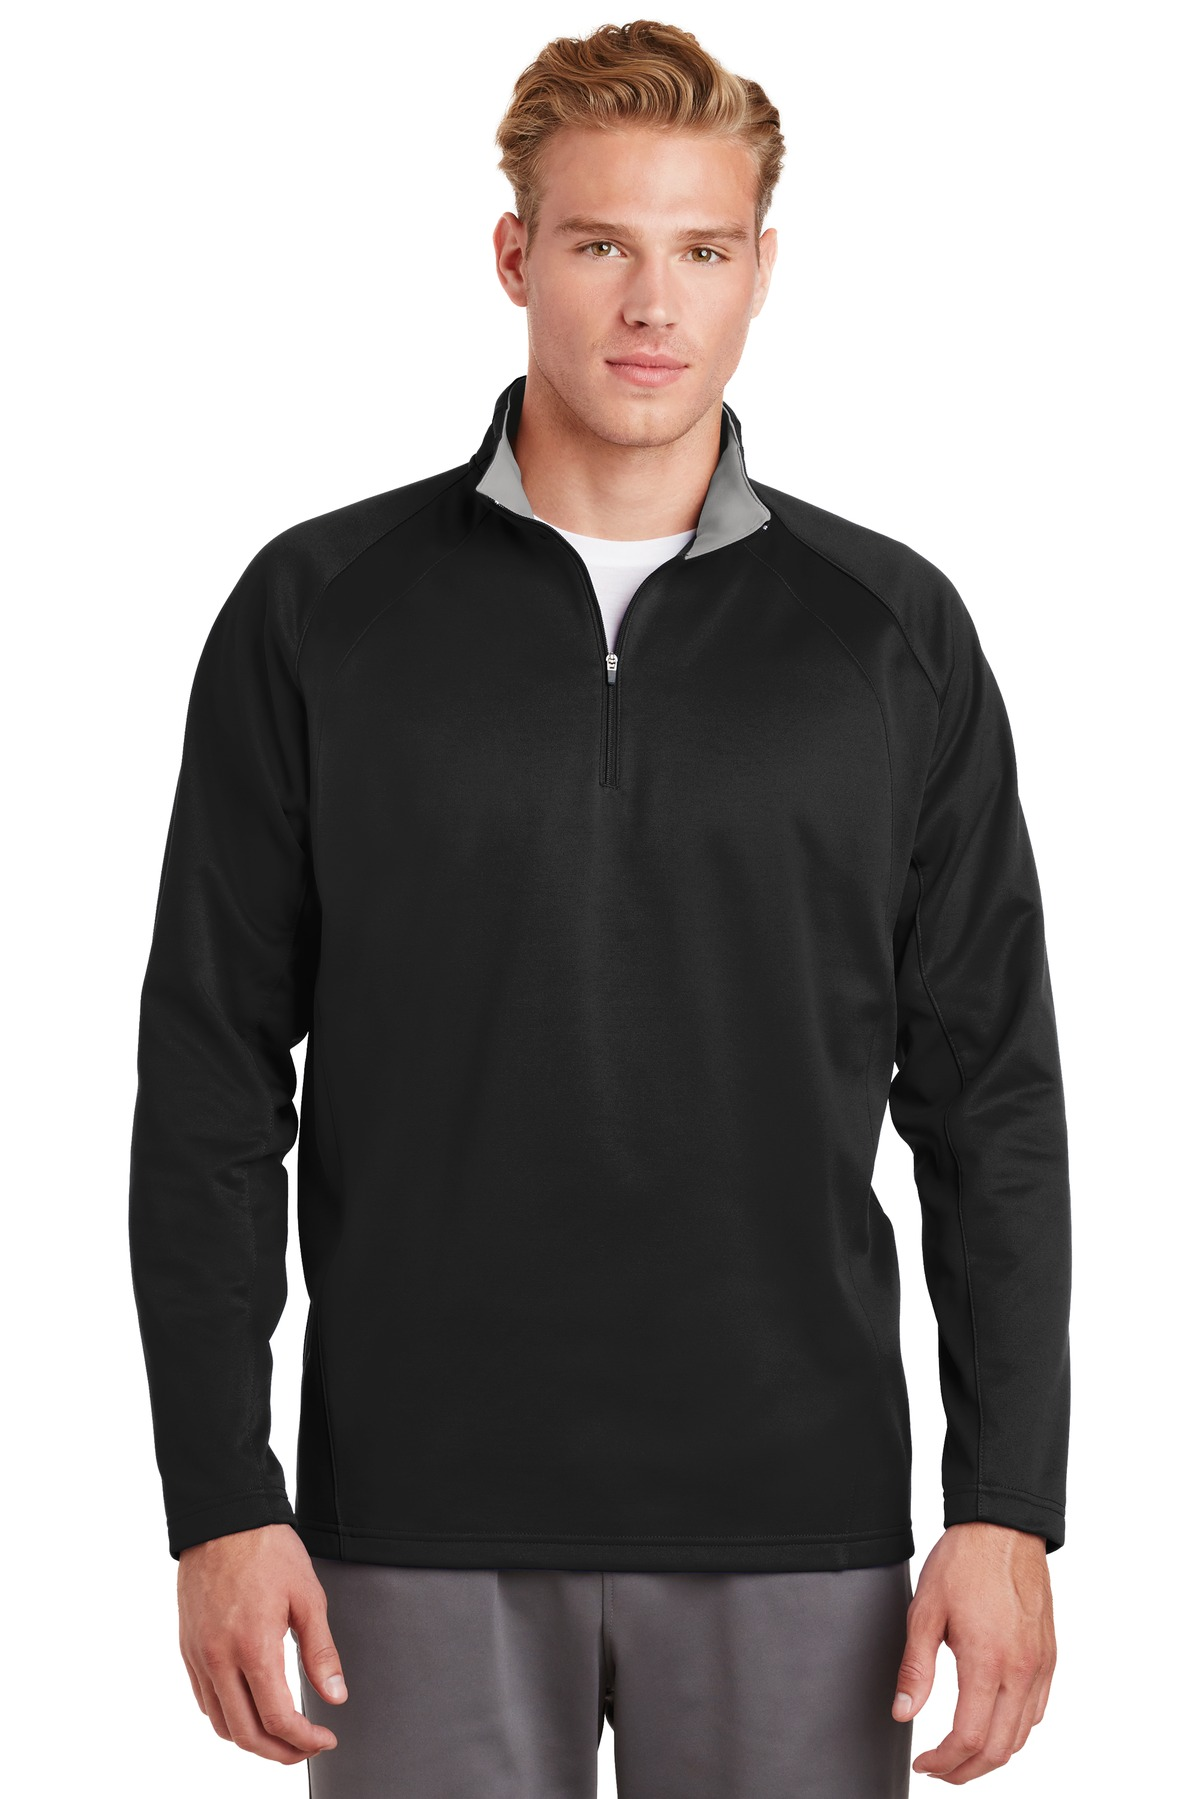 Sport Tek Sport Wick Fleece Hooded Pullover F244 Custom Shirt Shop Please note that only one logo can be displayed on a product at any one time. sport tek sport wick fleece hooded